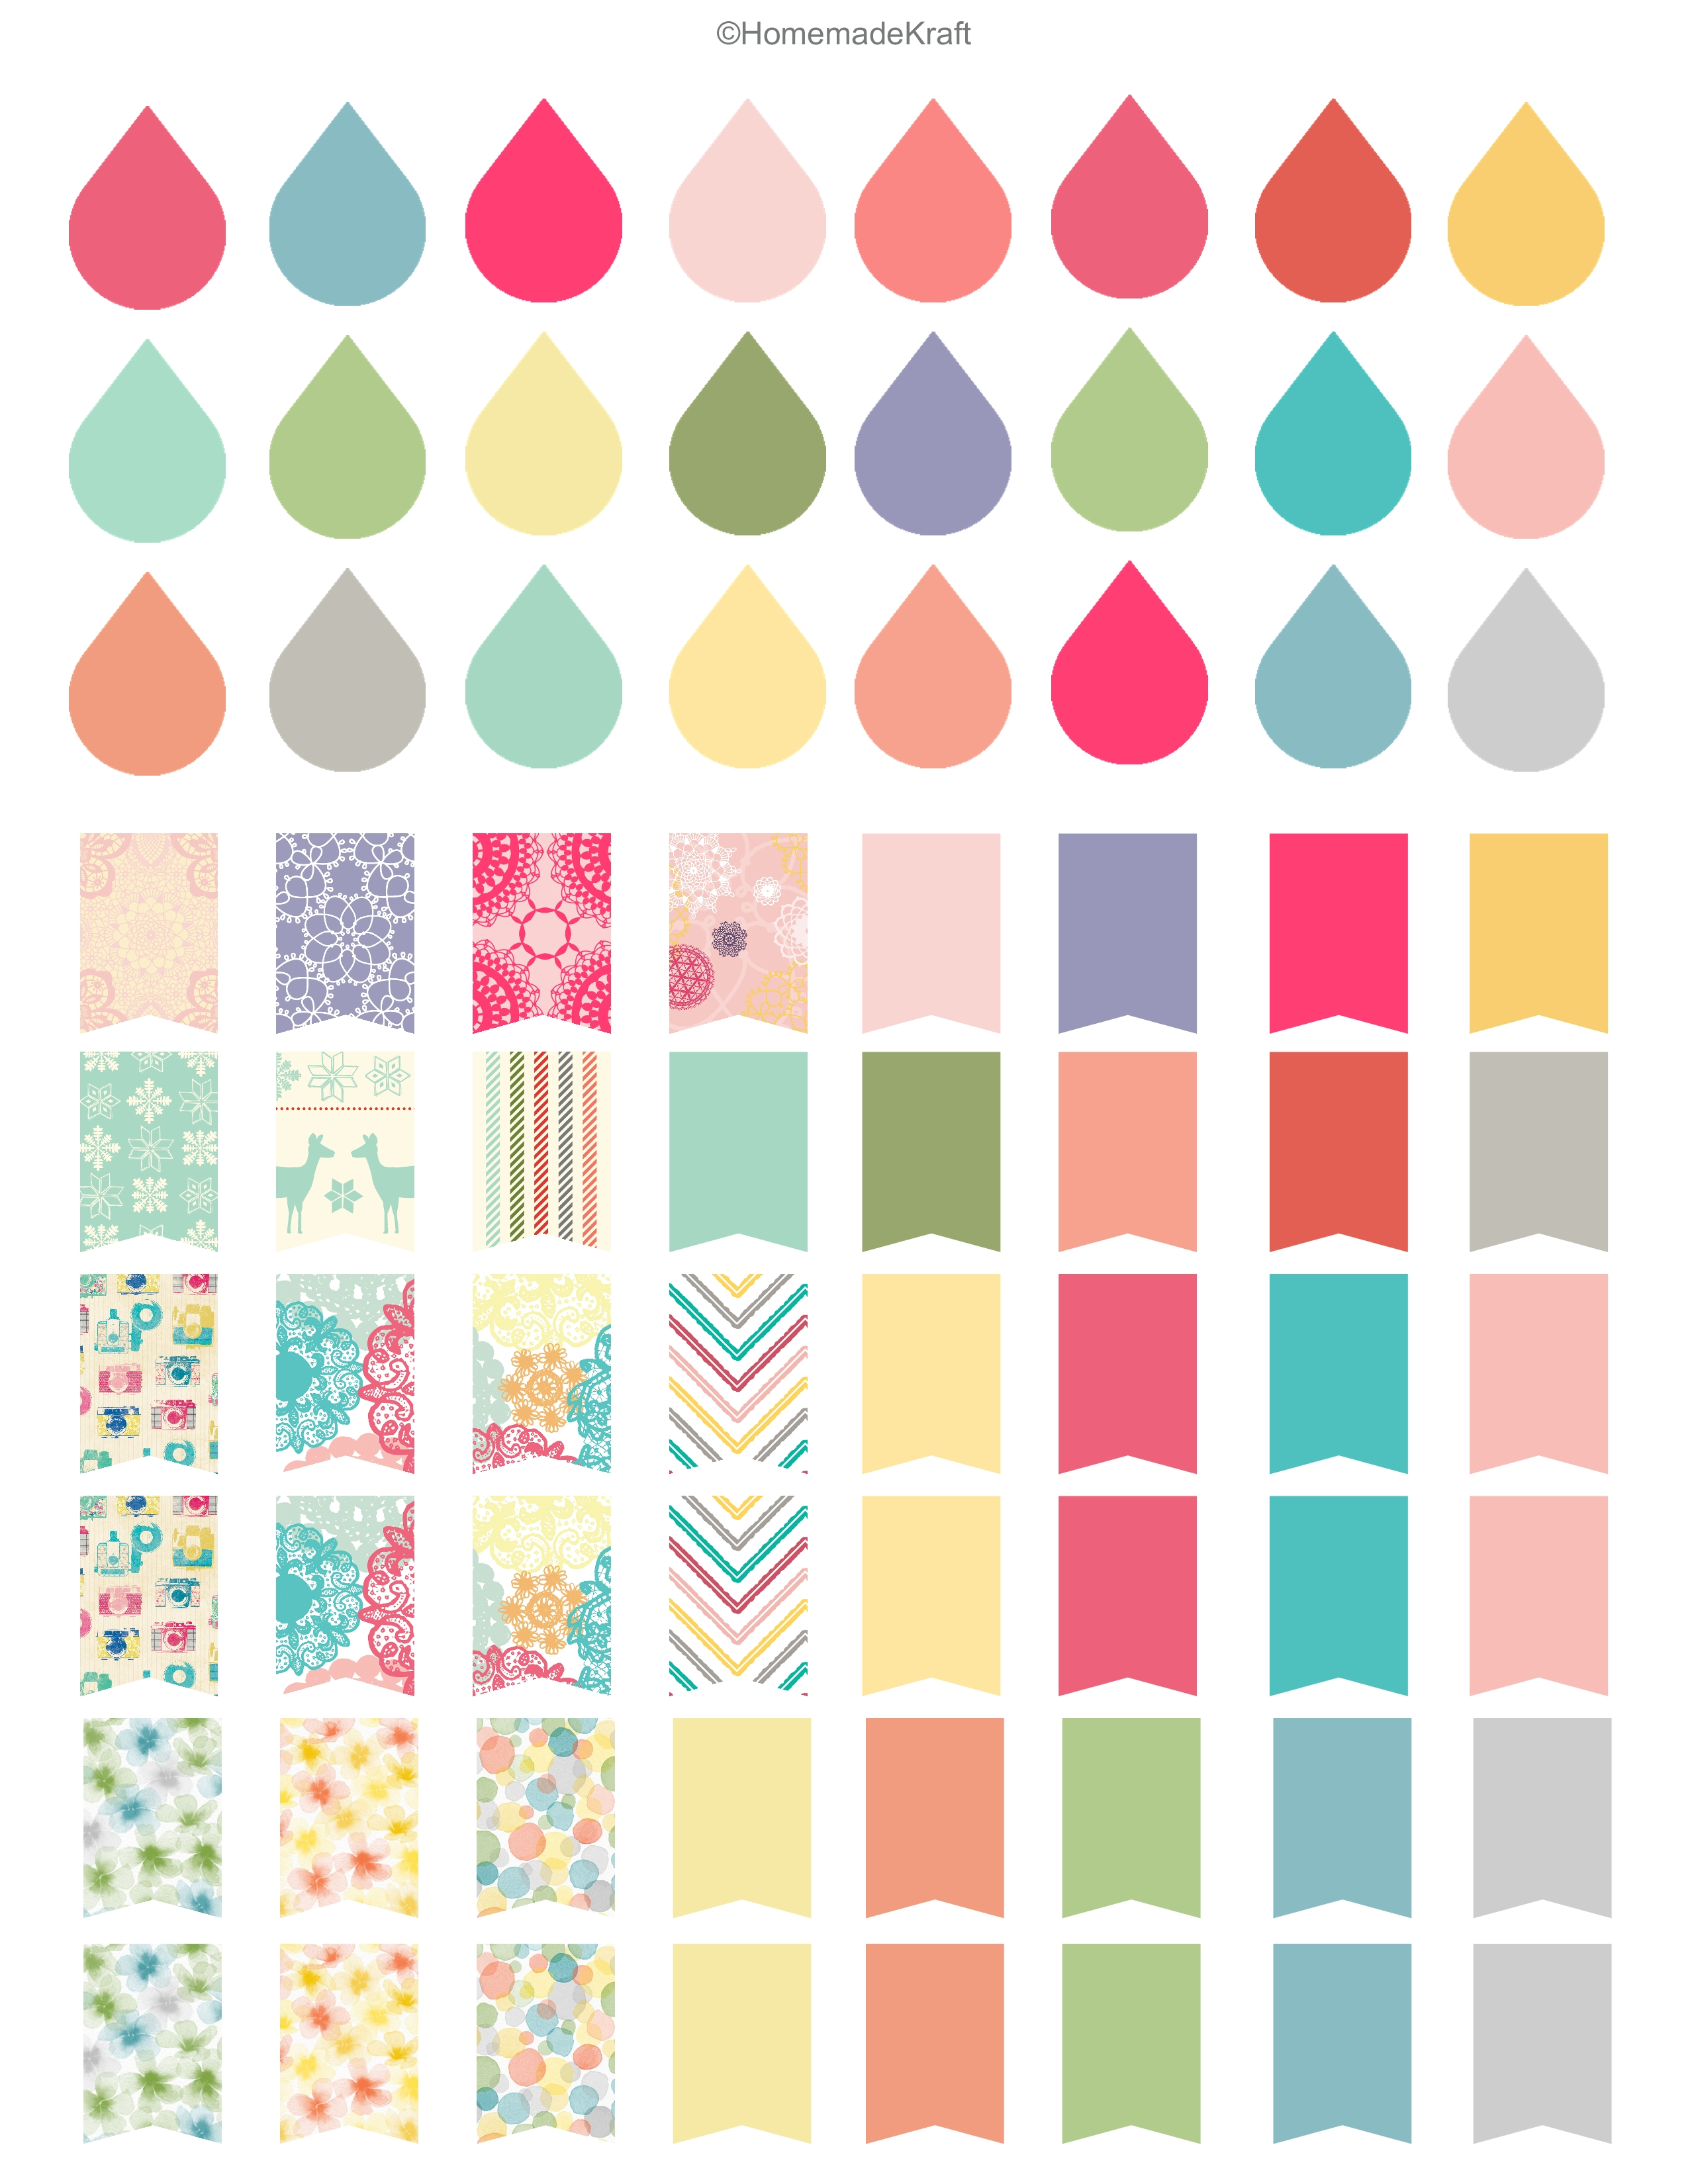 7 Images of Free Printable Planner Sticker Sheets